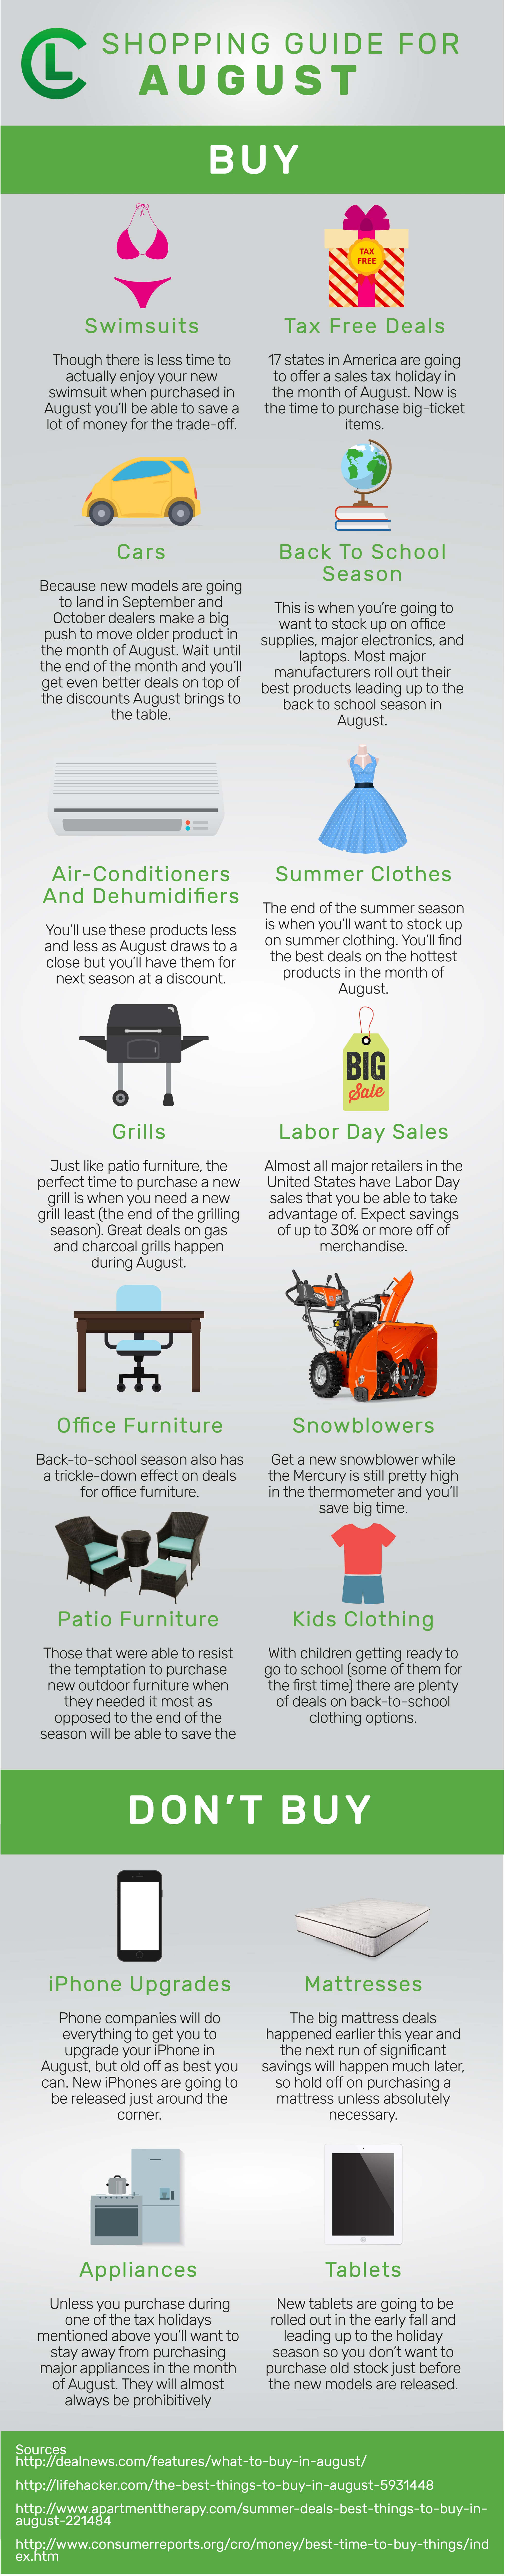 Shopping Guide For August Infographic